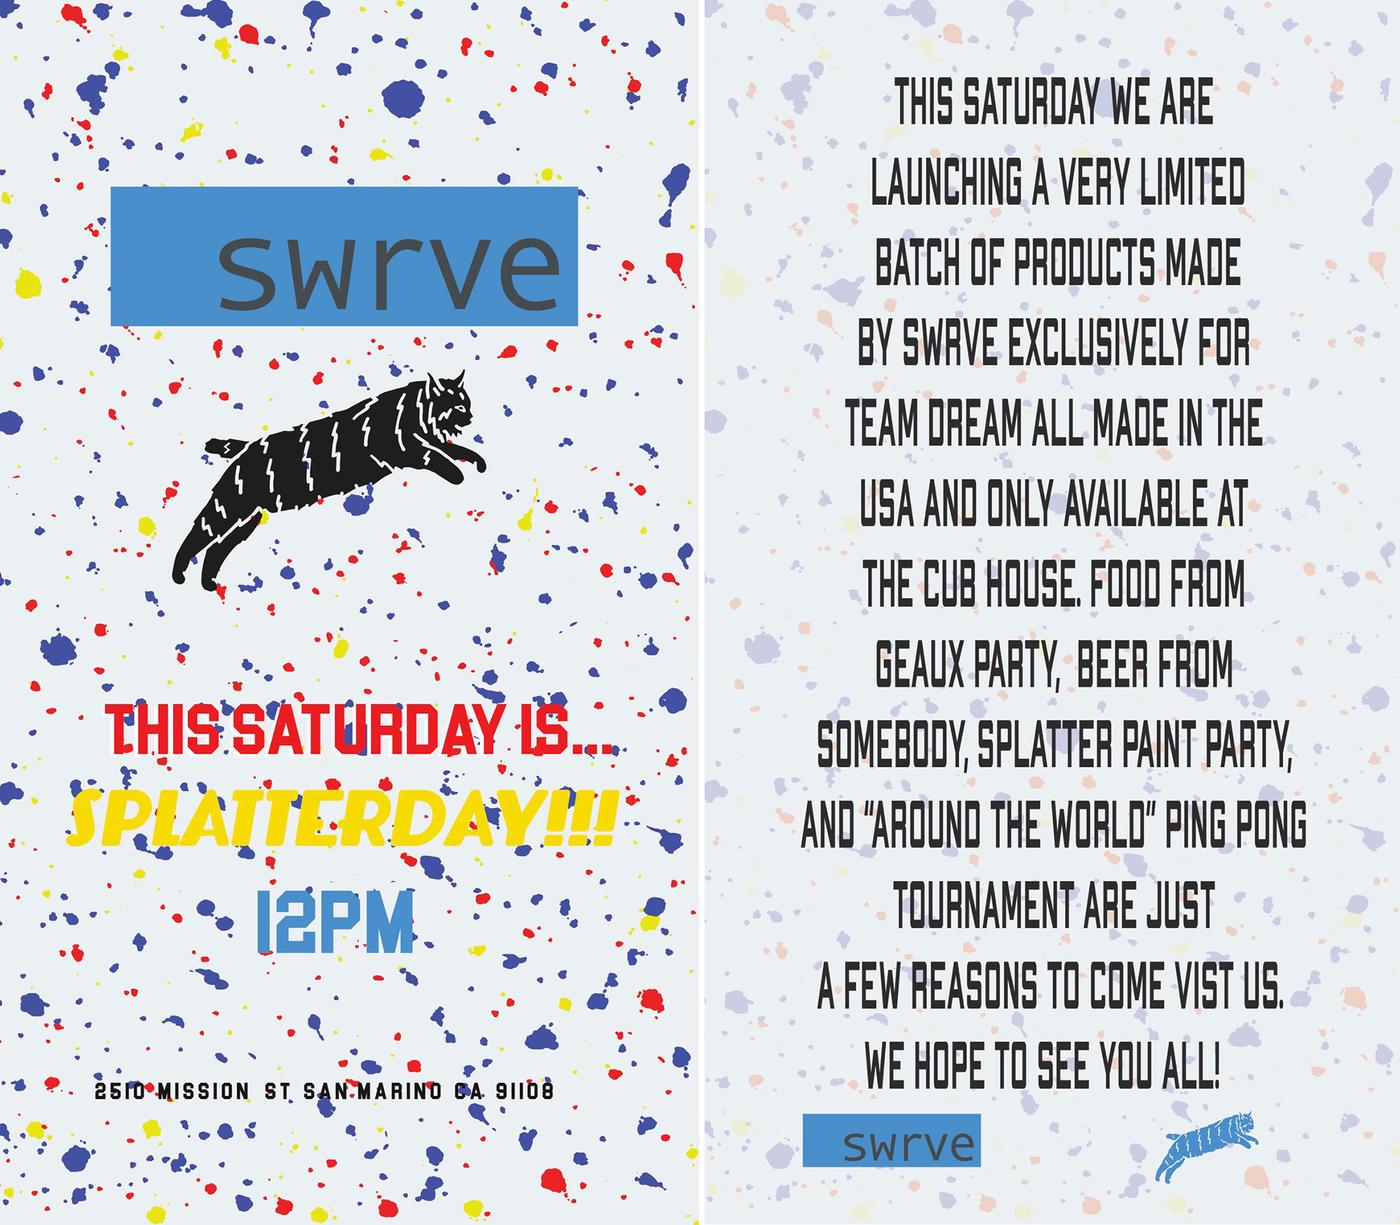 SPLATTERDAY! a SWRVE and Team Dream Party in Los Angeles Tomorrow!